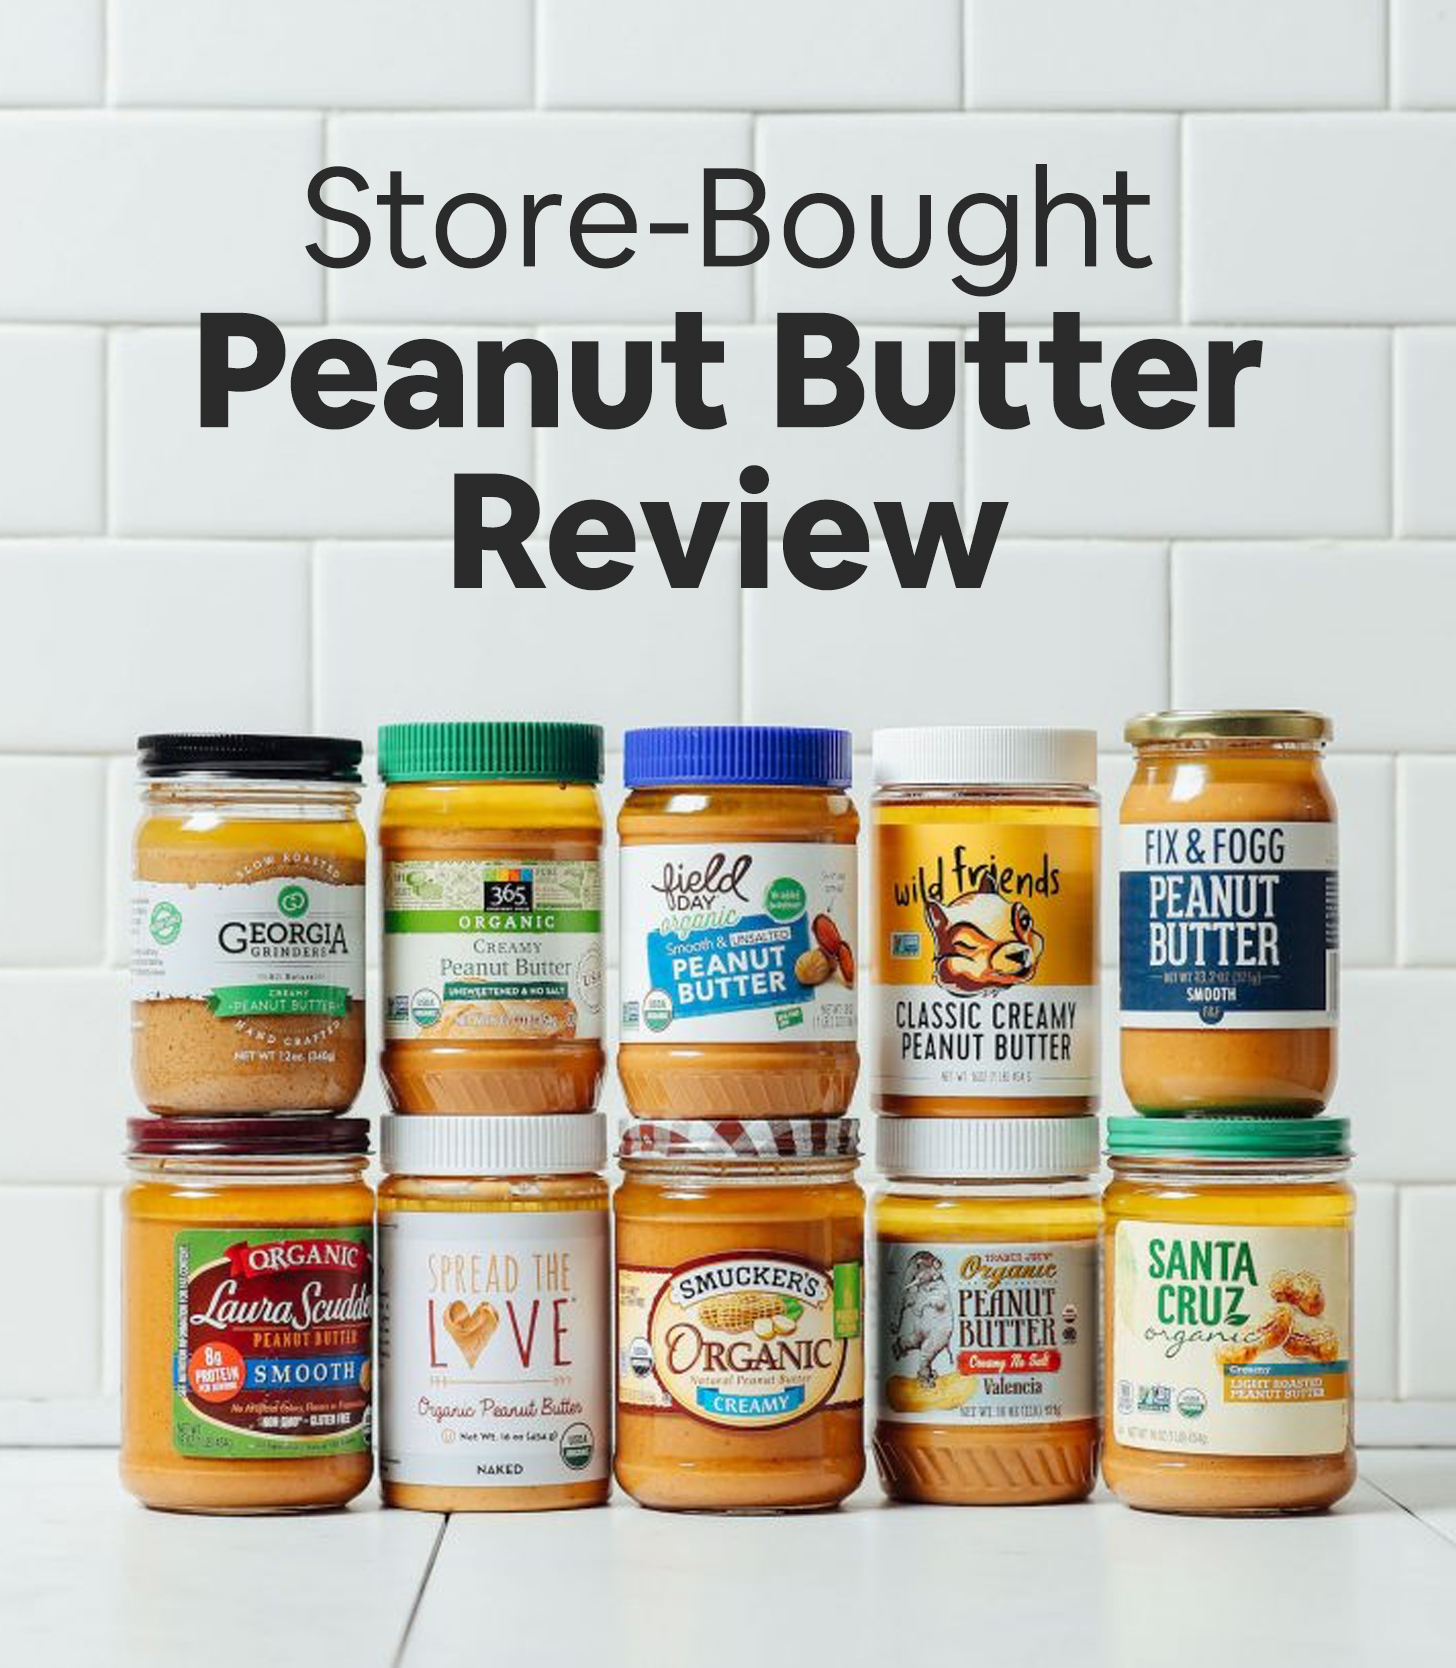 Jars of store-bought peanut butters for our unbiased review